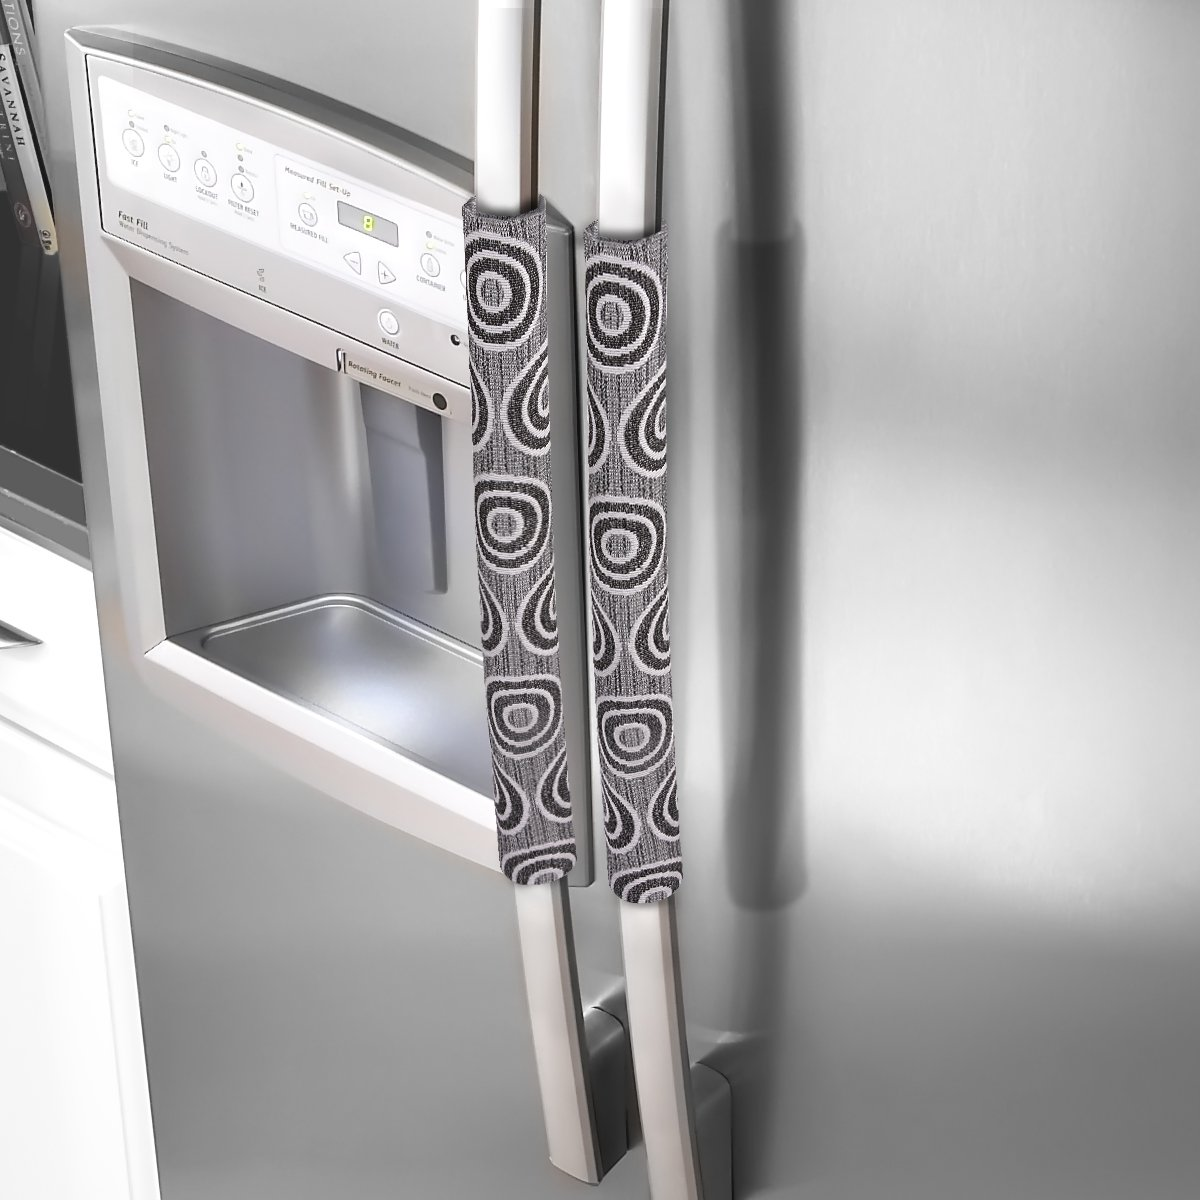 """OUGAR8 Handmade Refrigerator Dust Door Handle Cover-Catches Drips,Dust,Smudges and Fingerprints Leaving for Fridge Microwave Oven Handle Covers Home Kitchen Appliance Decoration(Circle,15.7"""" 4"""")"""